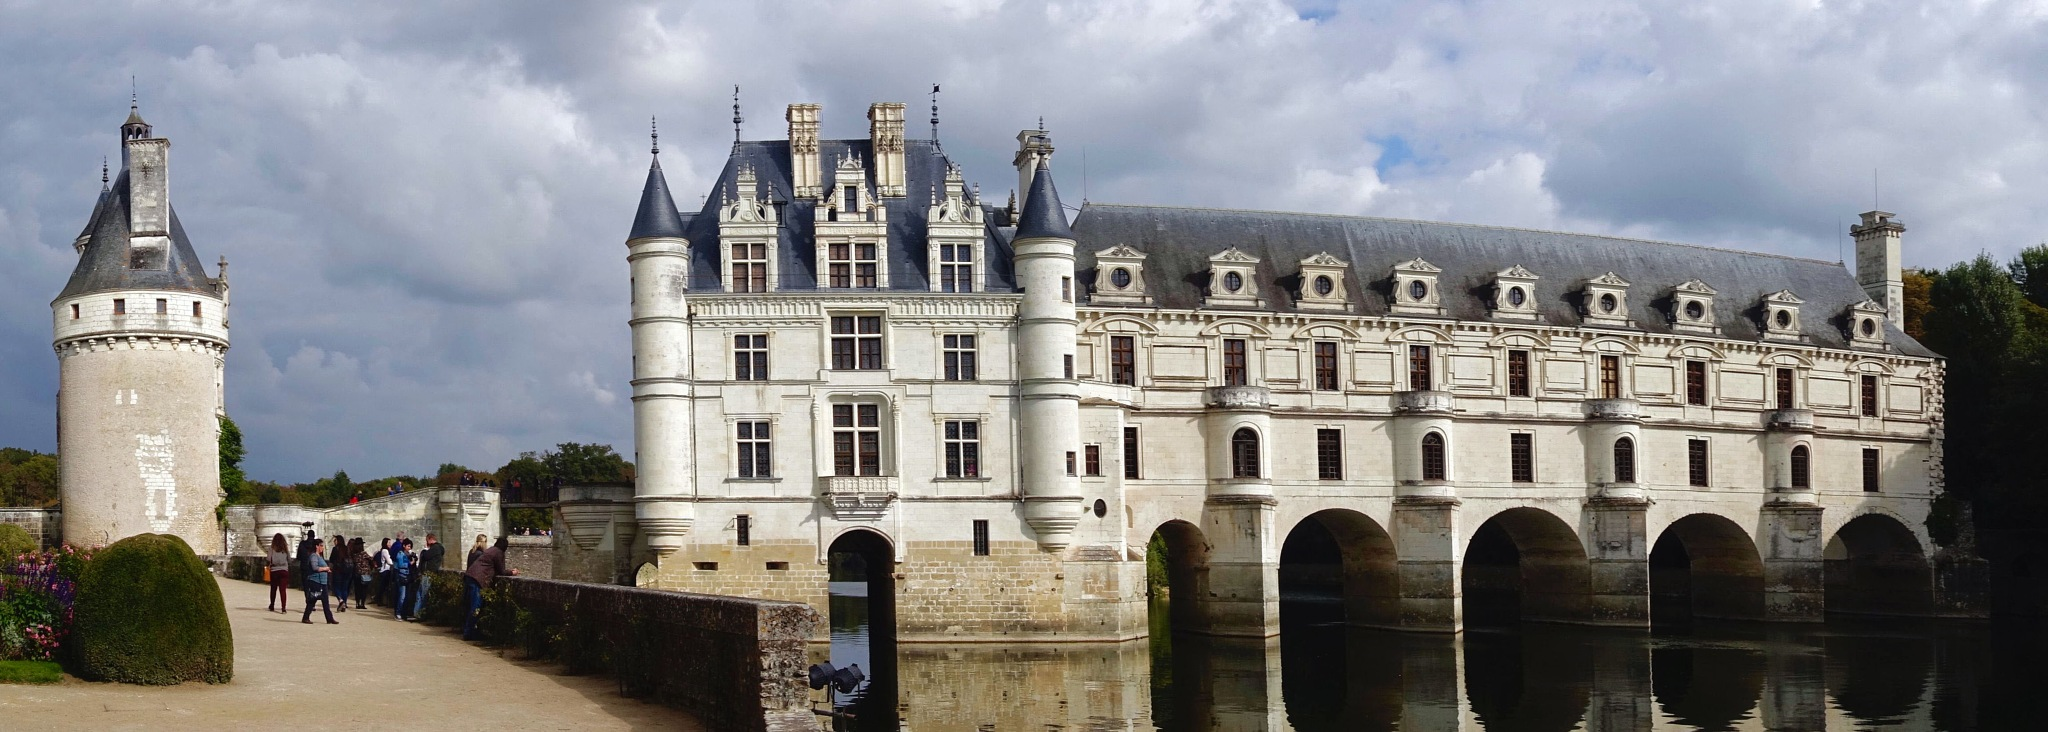 The castel Chenonceau in France. by Erwin Widmer